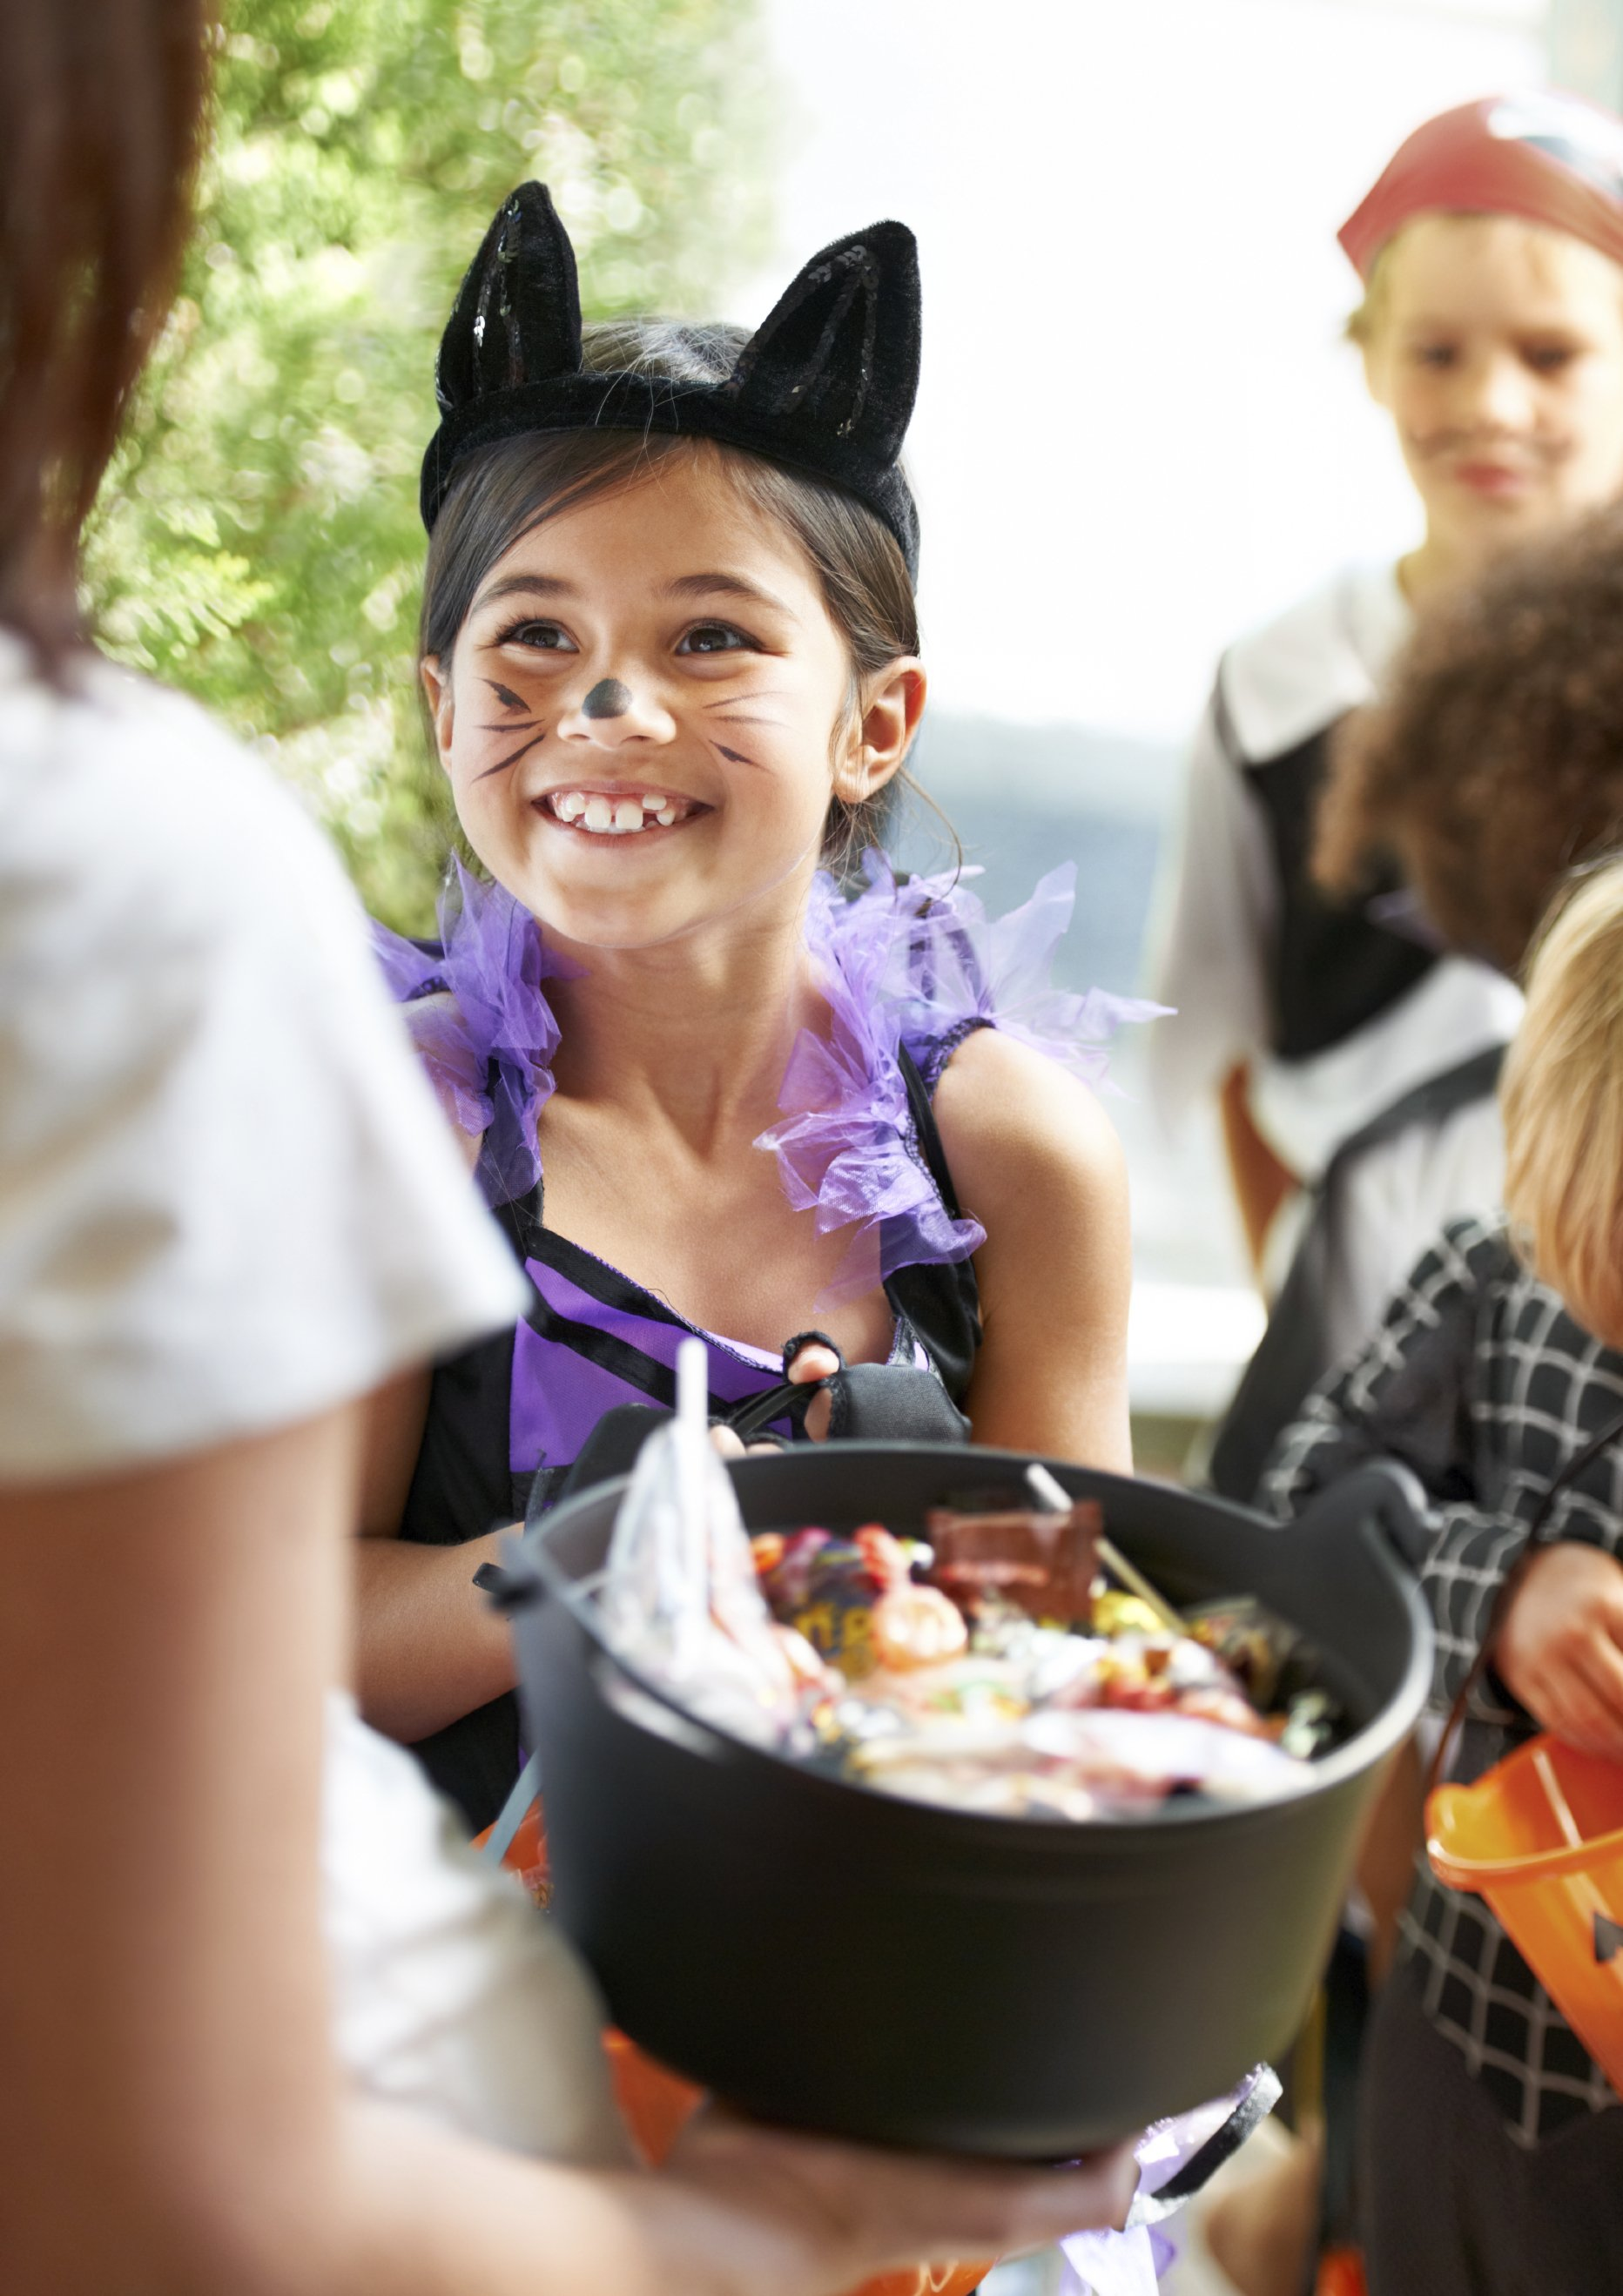 Don't Let Halloween Treats Pull Tricks on Your Kids' Teeth